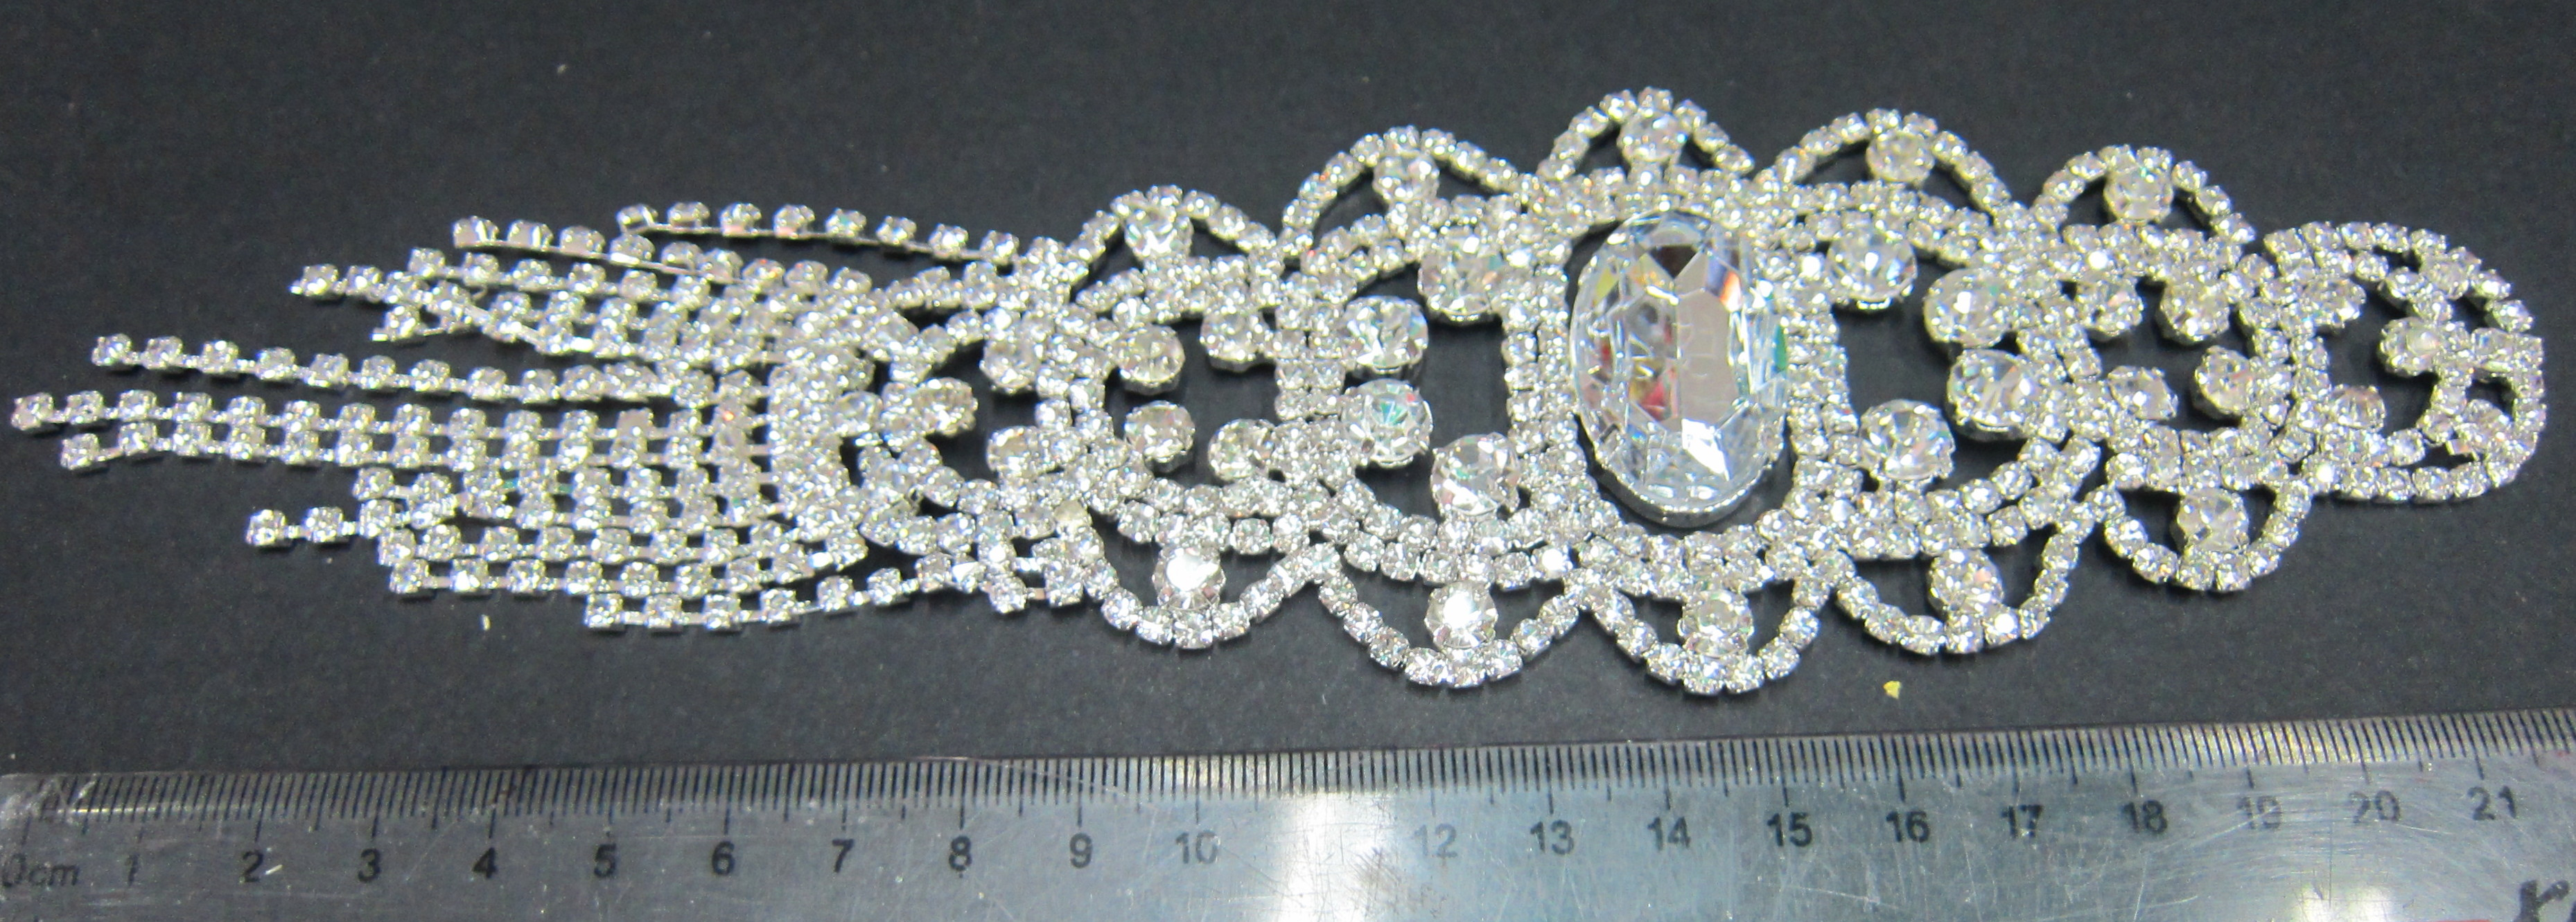 C10-07 Rhinestone Applique